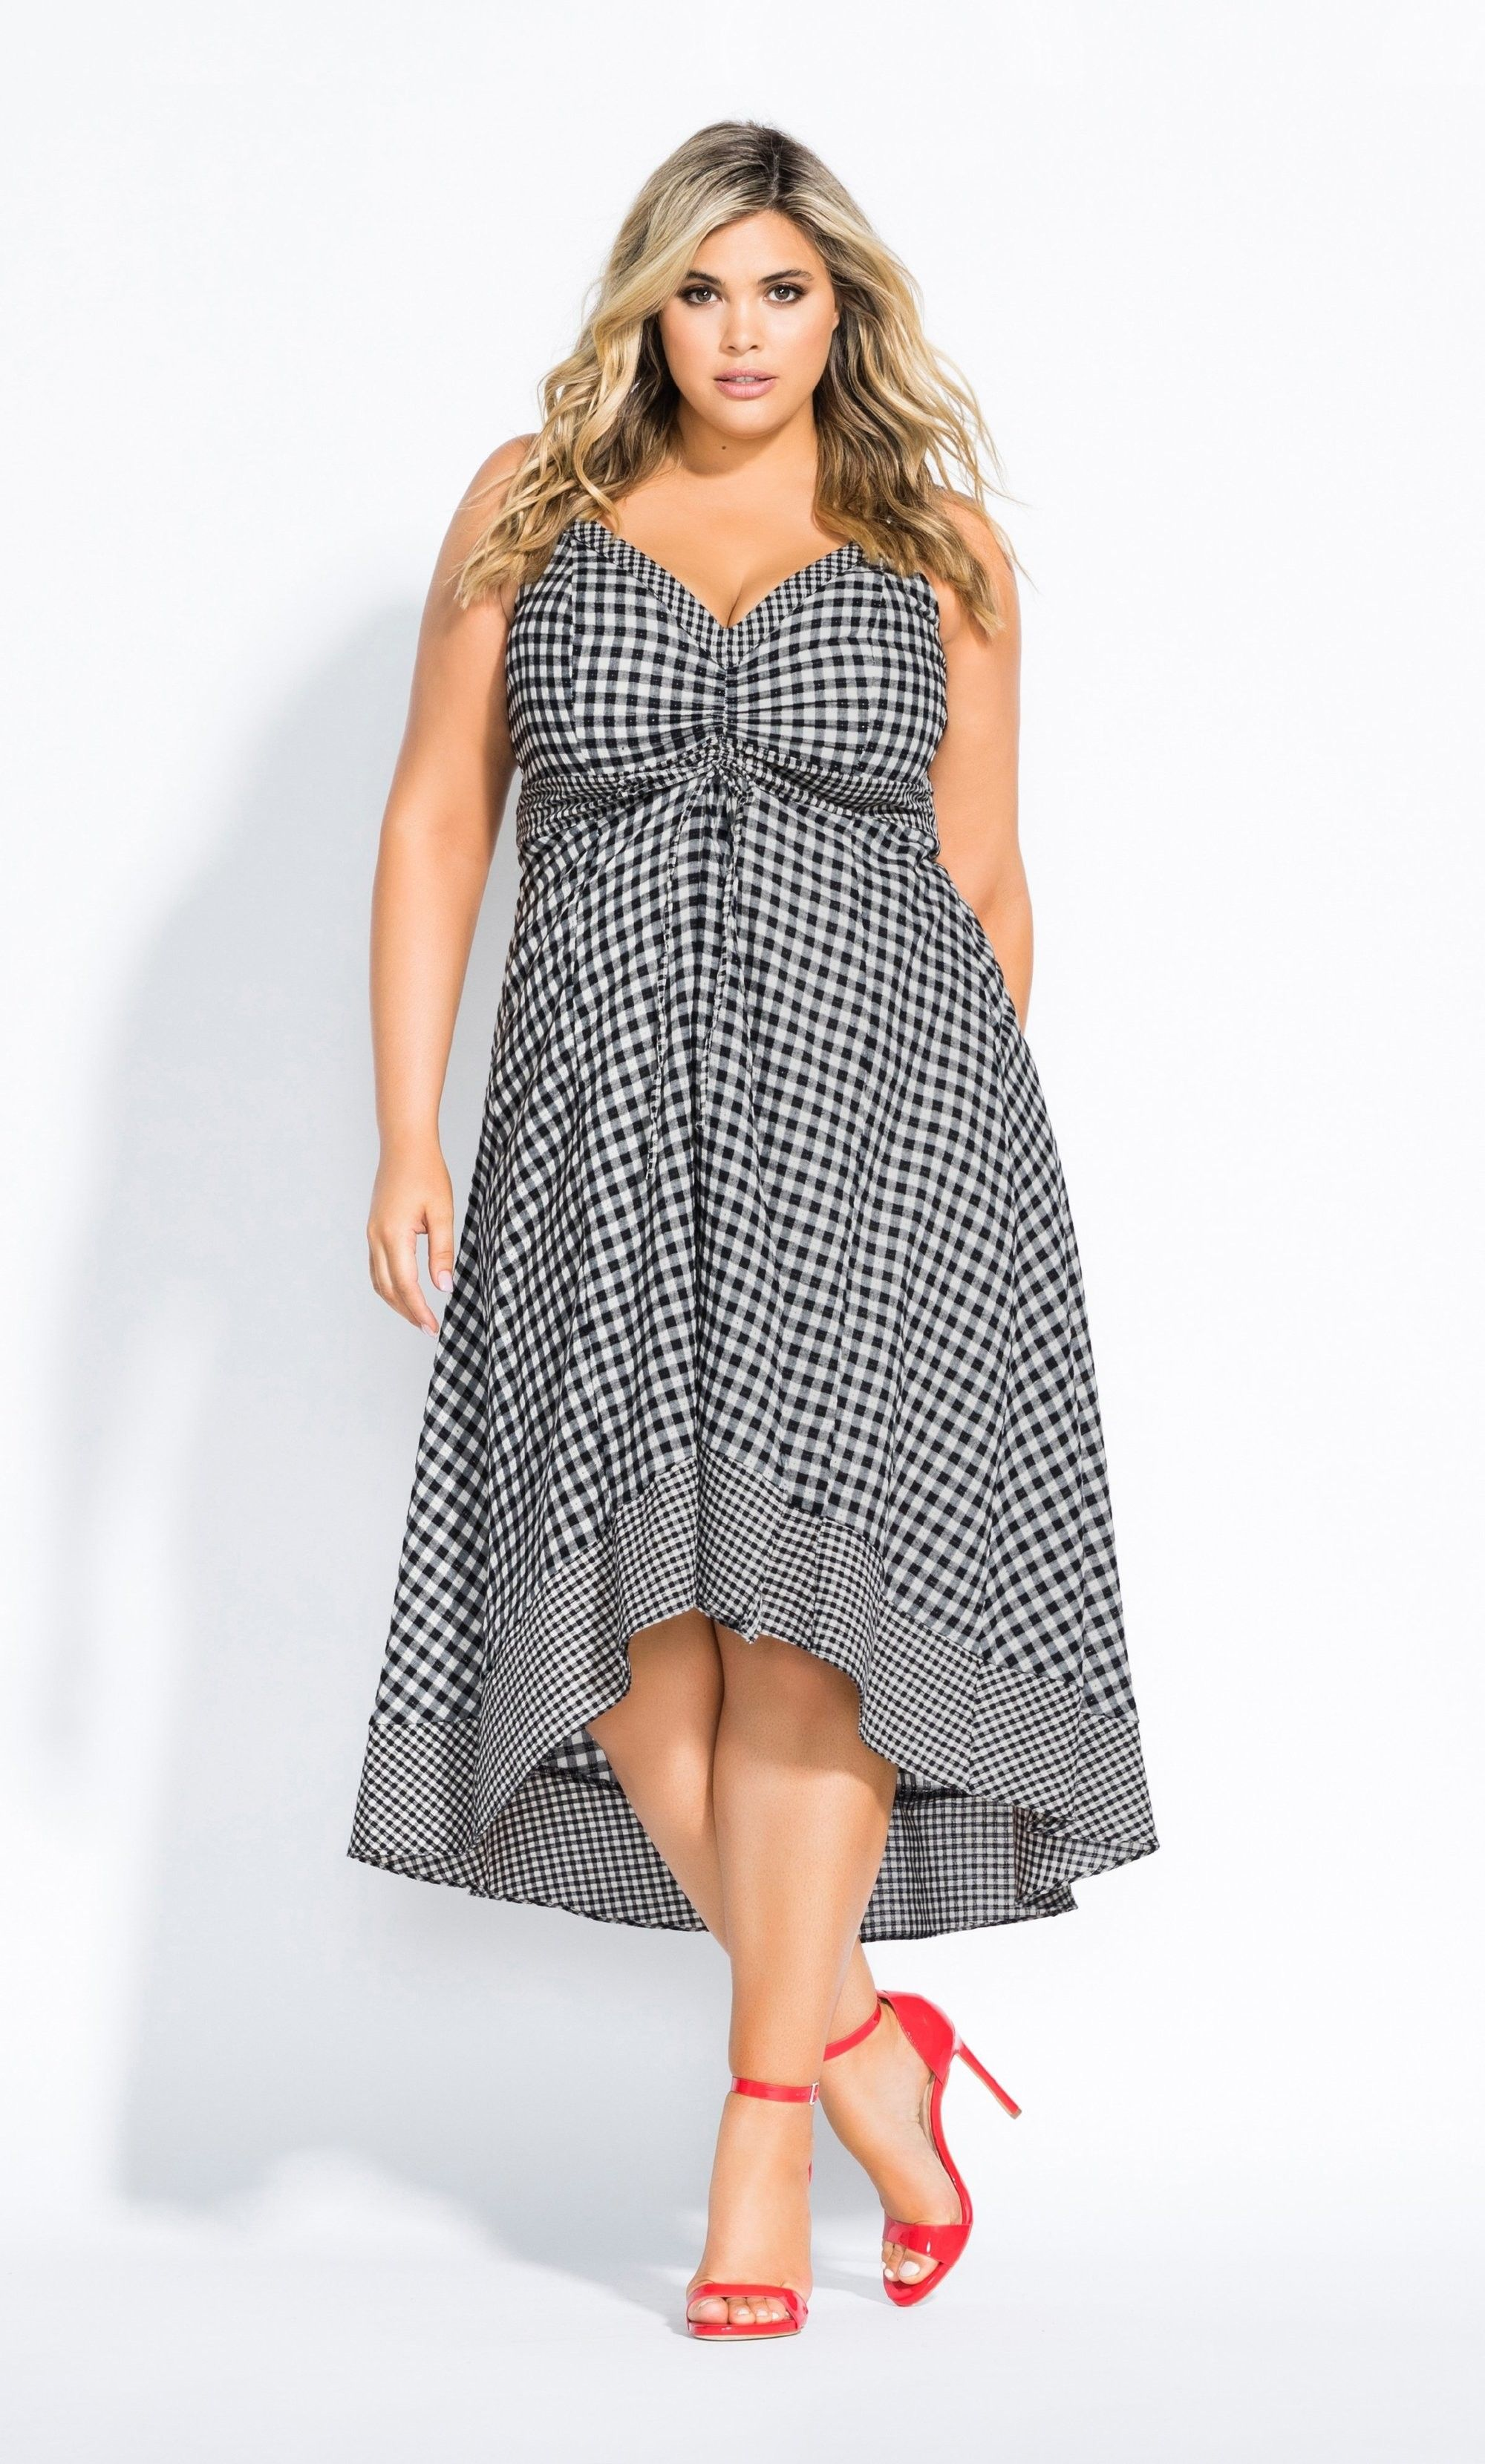 Gingham Darlin Dress Black Dresses Fashion City Chic Outfit [ 3319 x 2000 Pixel ]